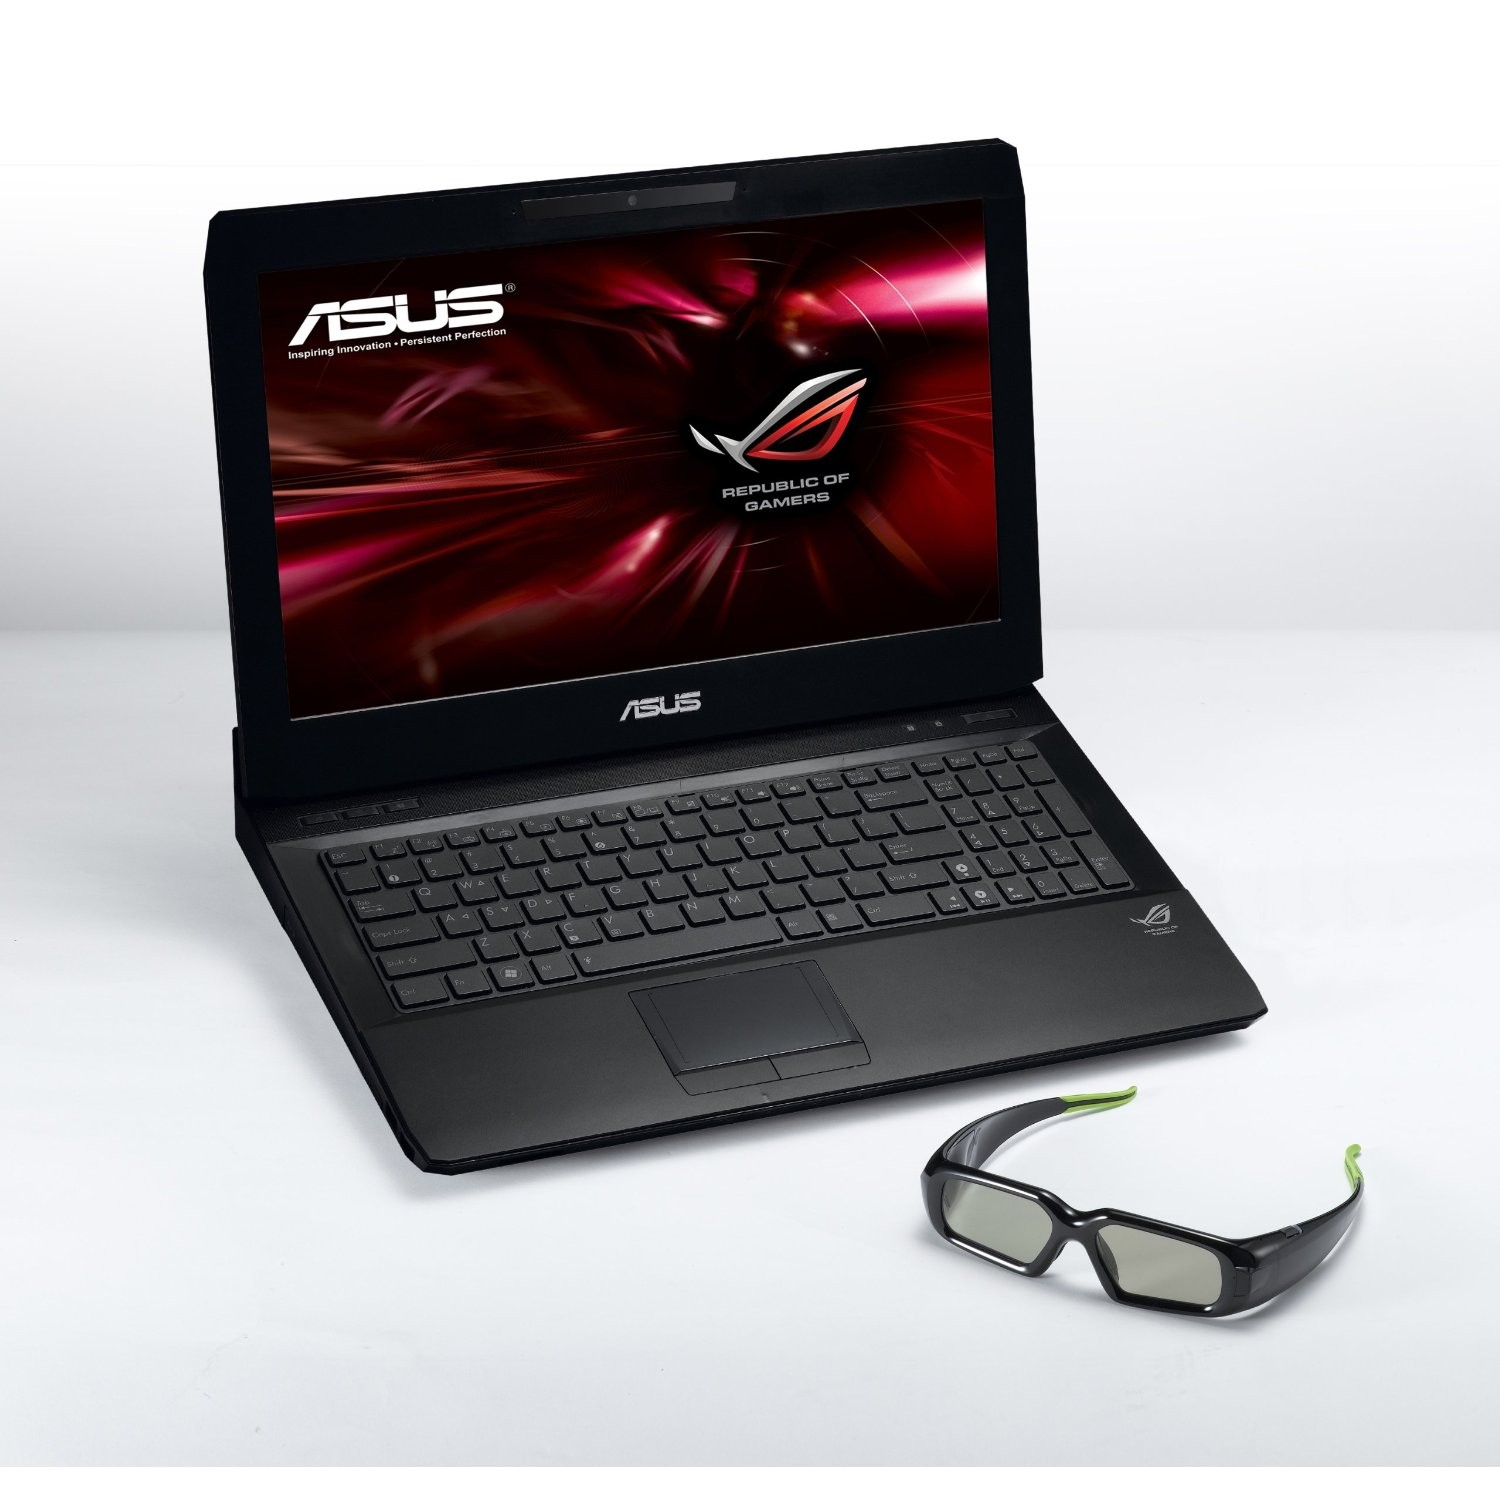 ASUS G53SW NOTEBOOK TURBO BOOST MONITOR WINDOWS 10 DRIVERS DOWNLOAD